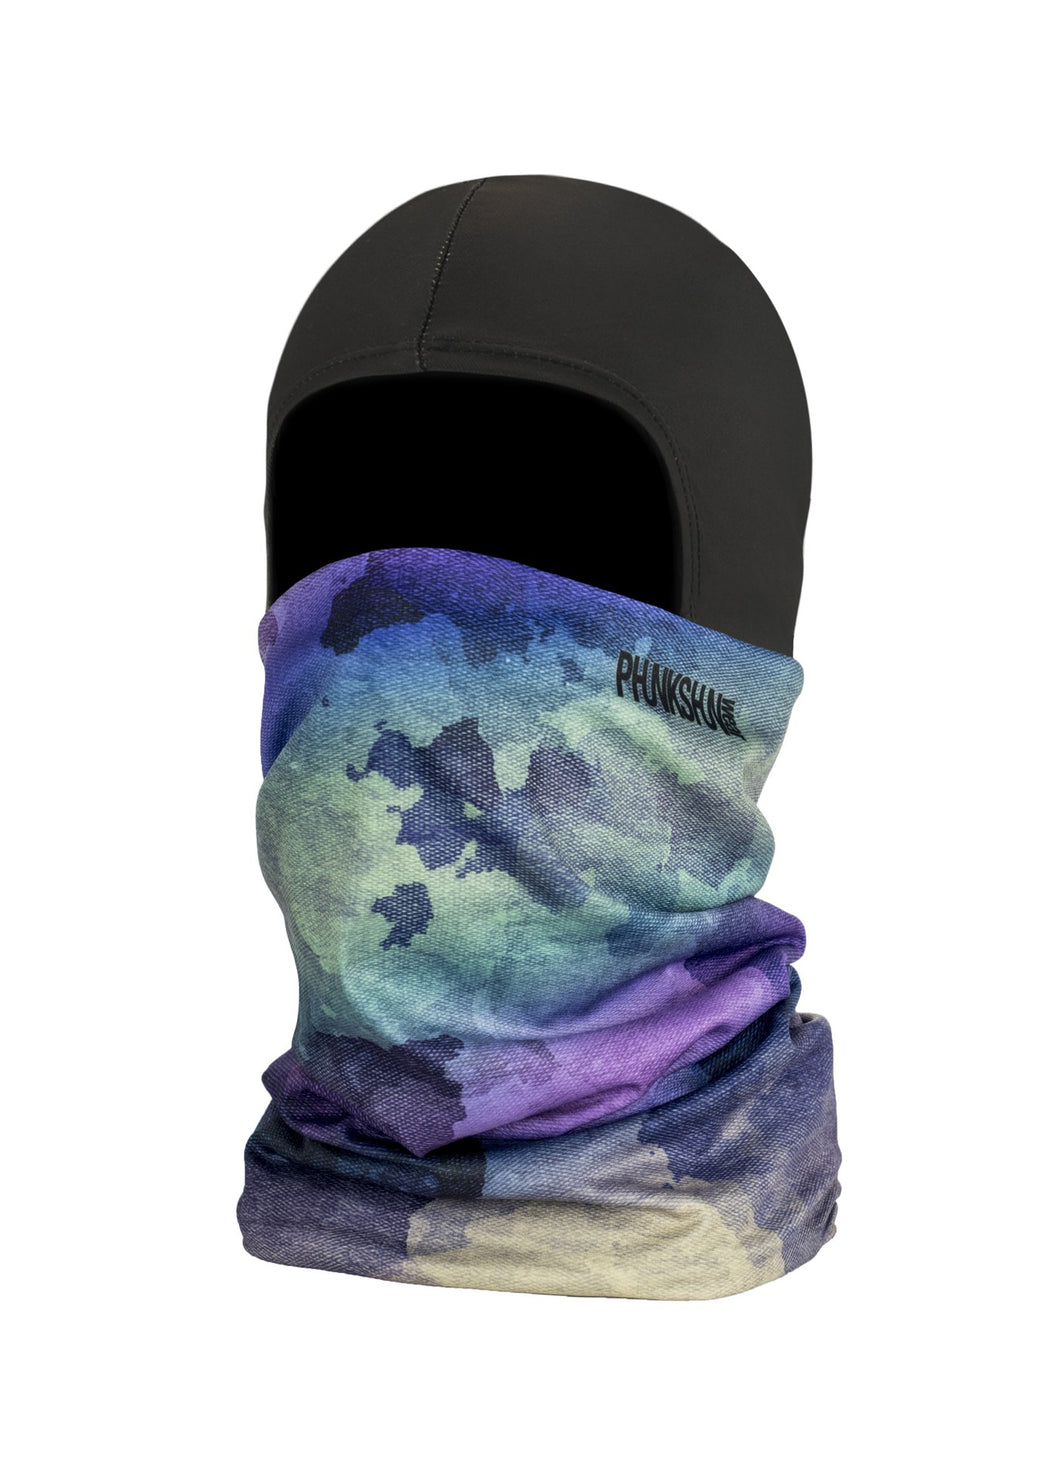 Function Wear Double dual layer ballerclava balaclava full face mask medium weight urban multi blue purple green camouflage